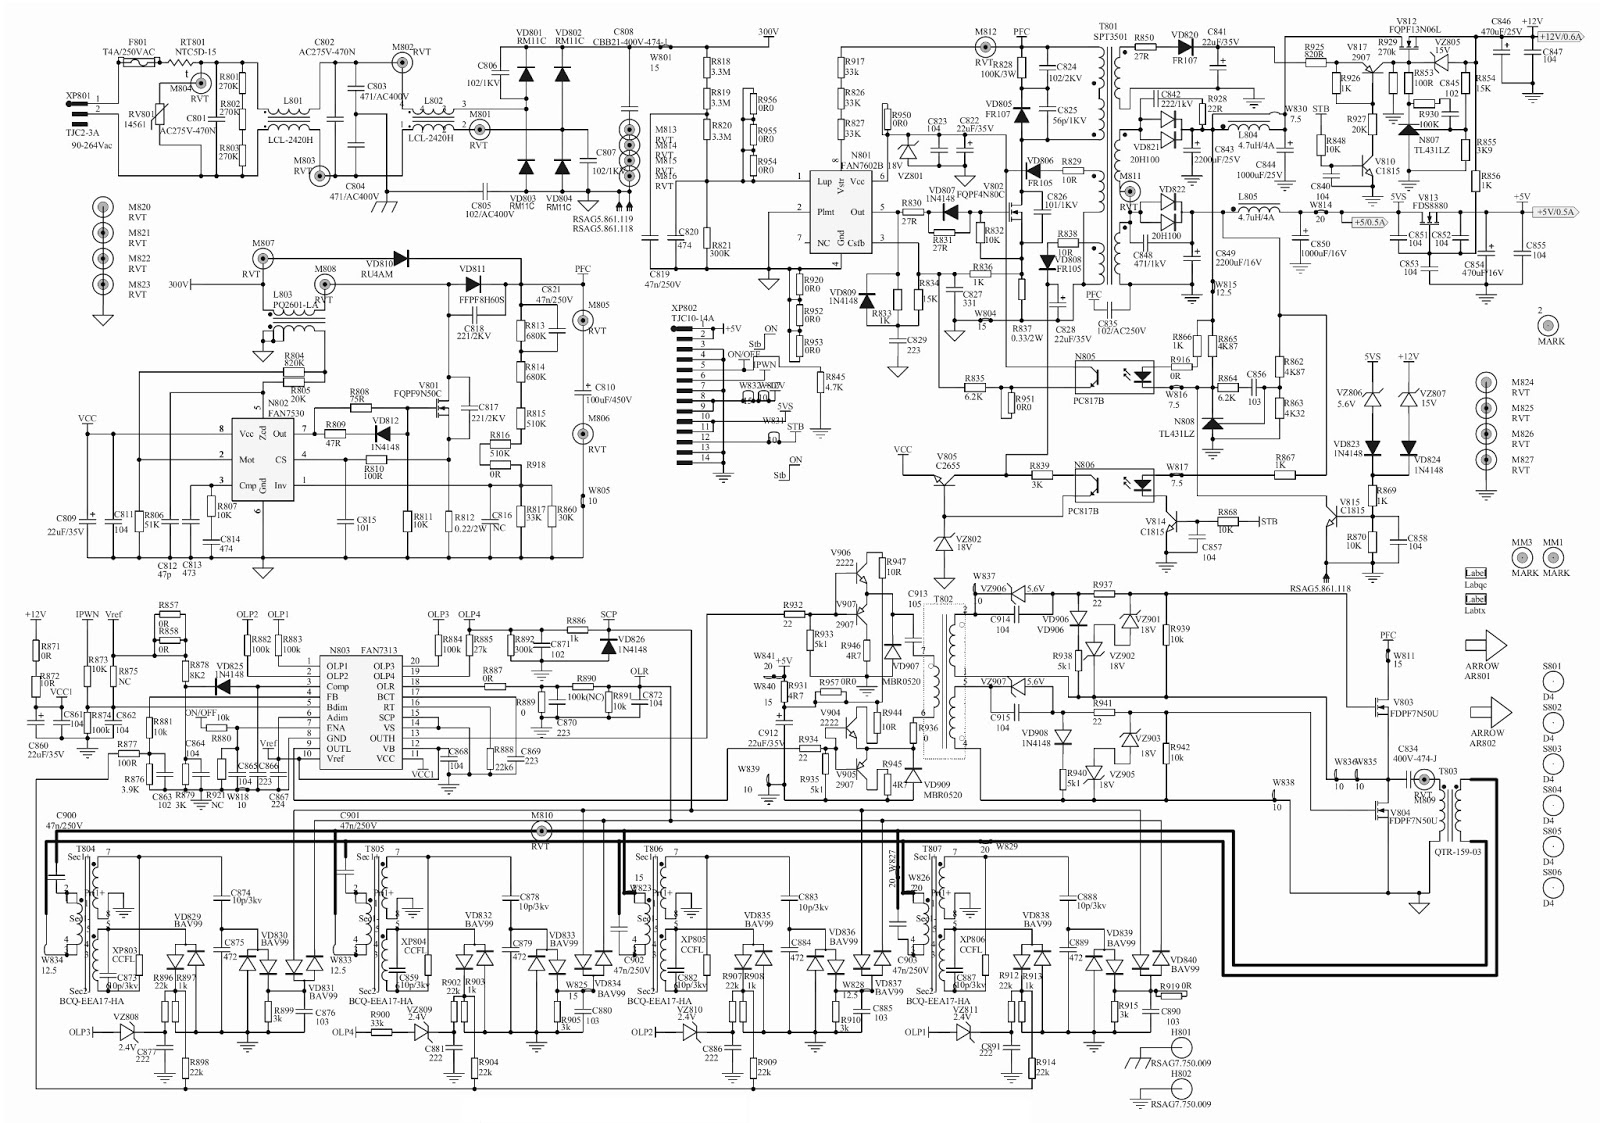 Hisense Led Tv Schematic Diagram Wiring Diagrams For Smart 50 Schemes Hdtv No Signal